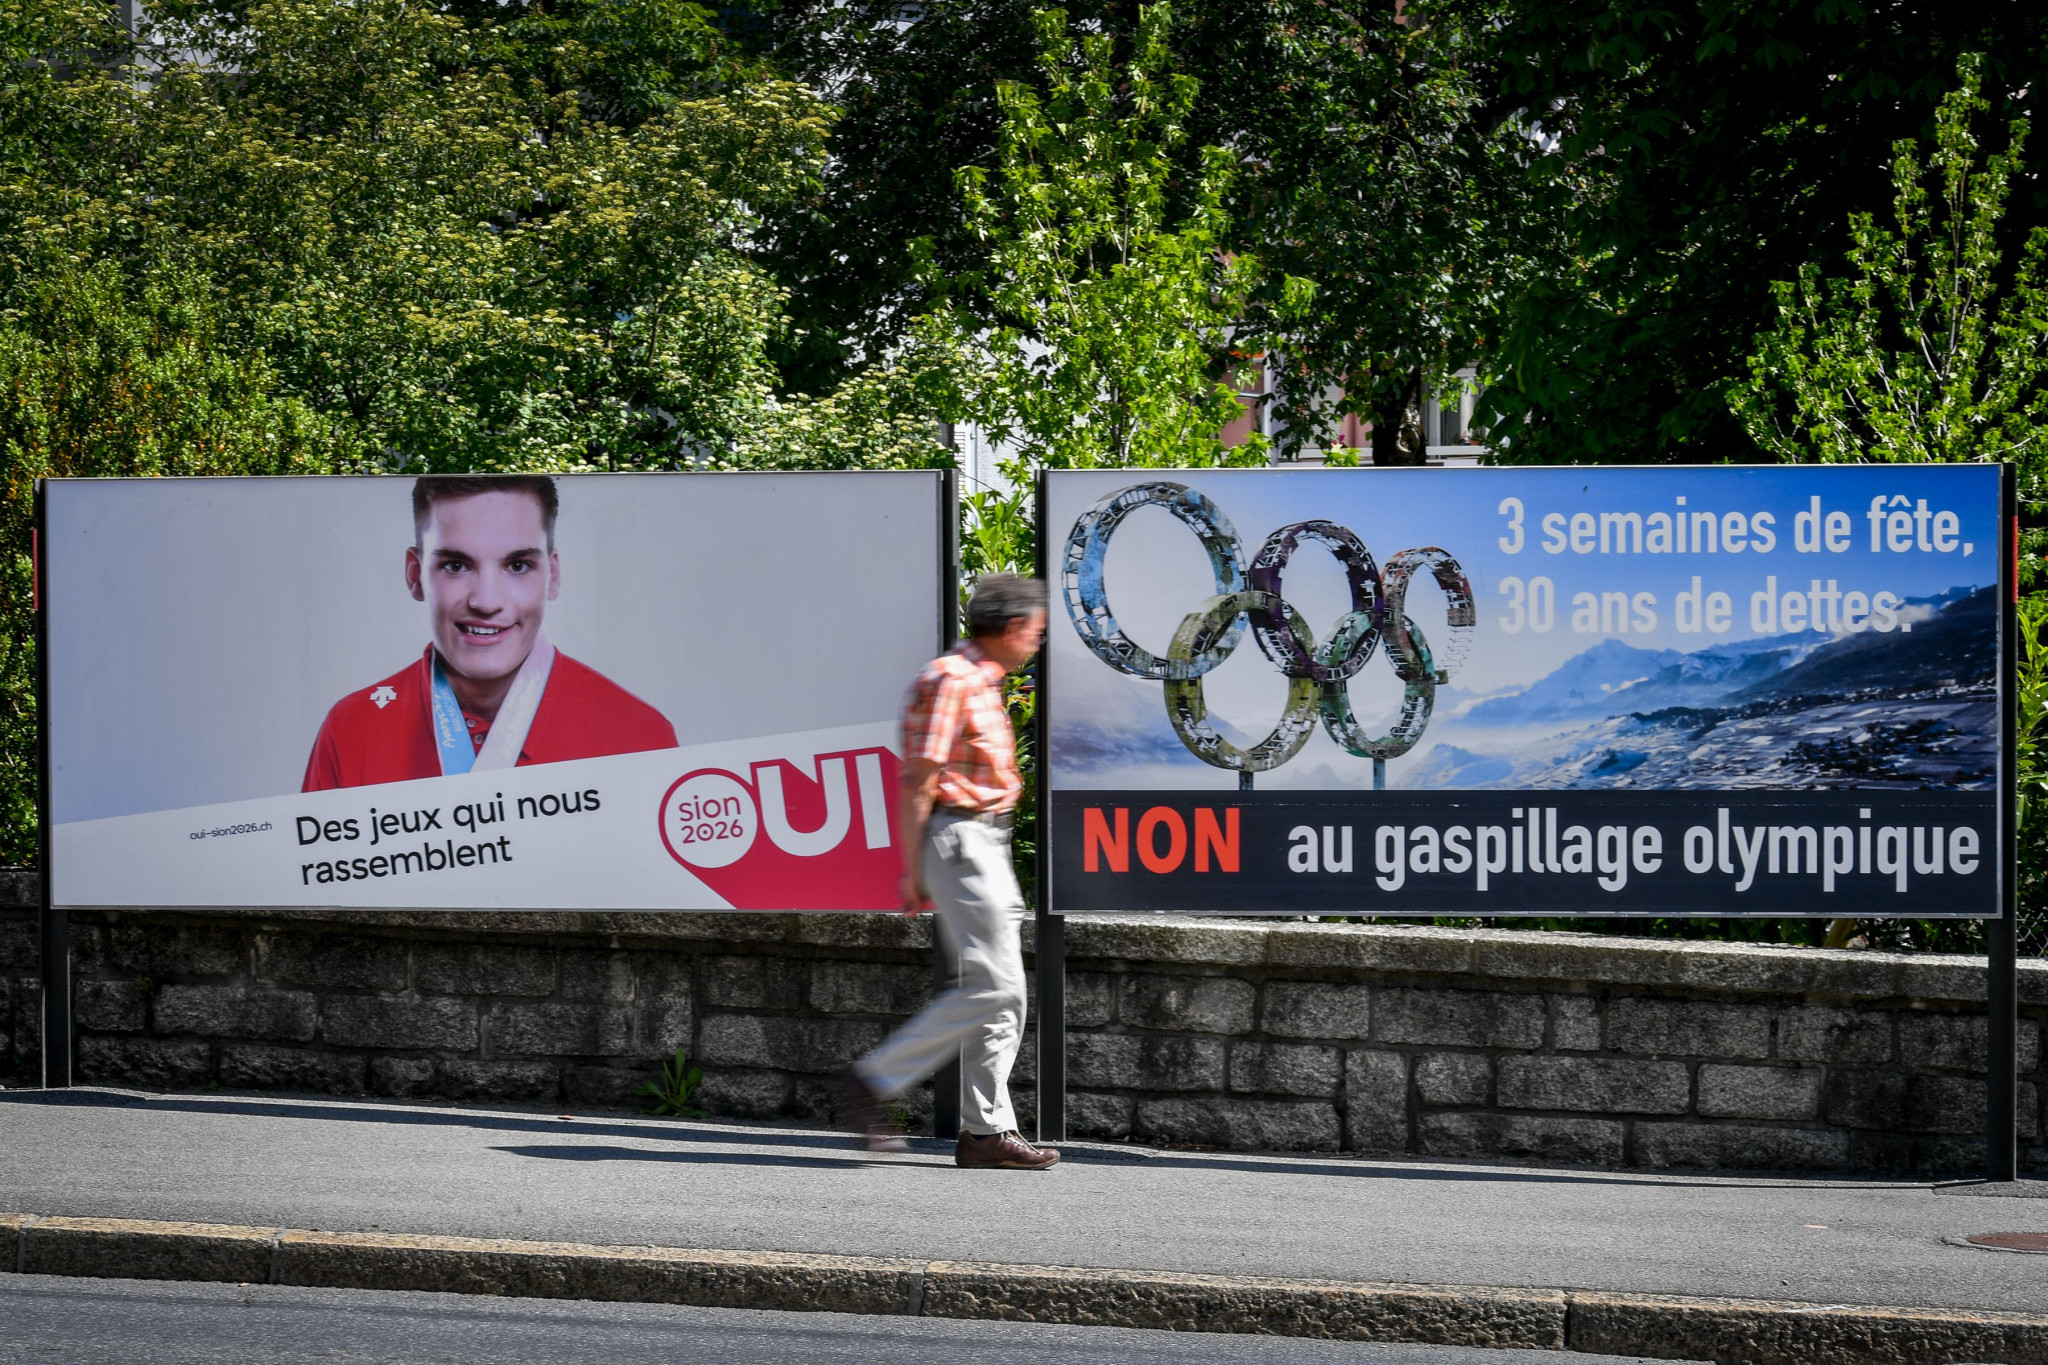 Sion was one of the recent bidding cities to withdraw from contention after losing a referendum ©Getty Images